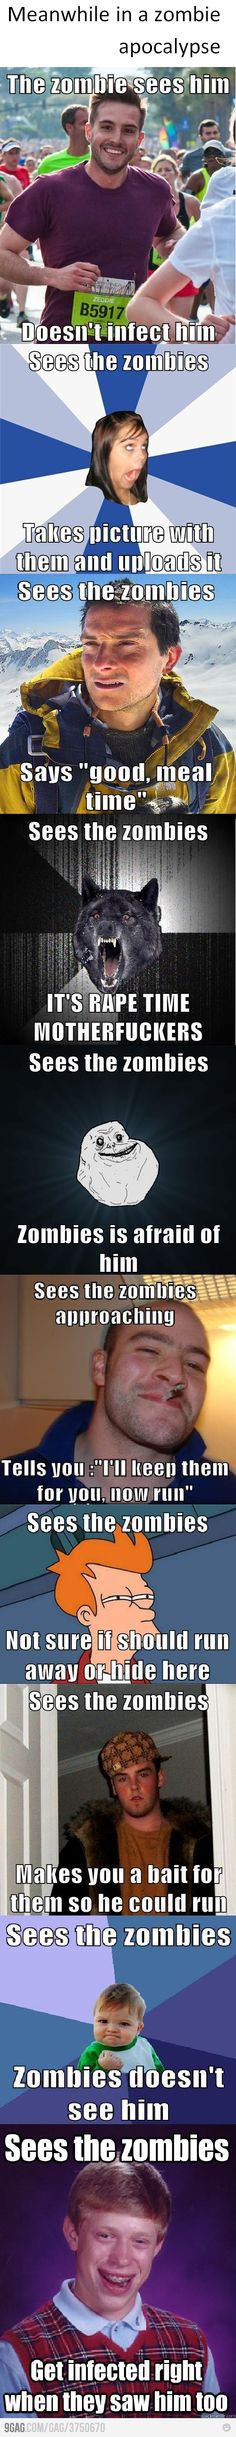 If Meme's Were In A Zombie Apocolypse xD